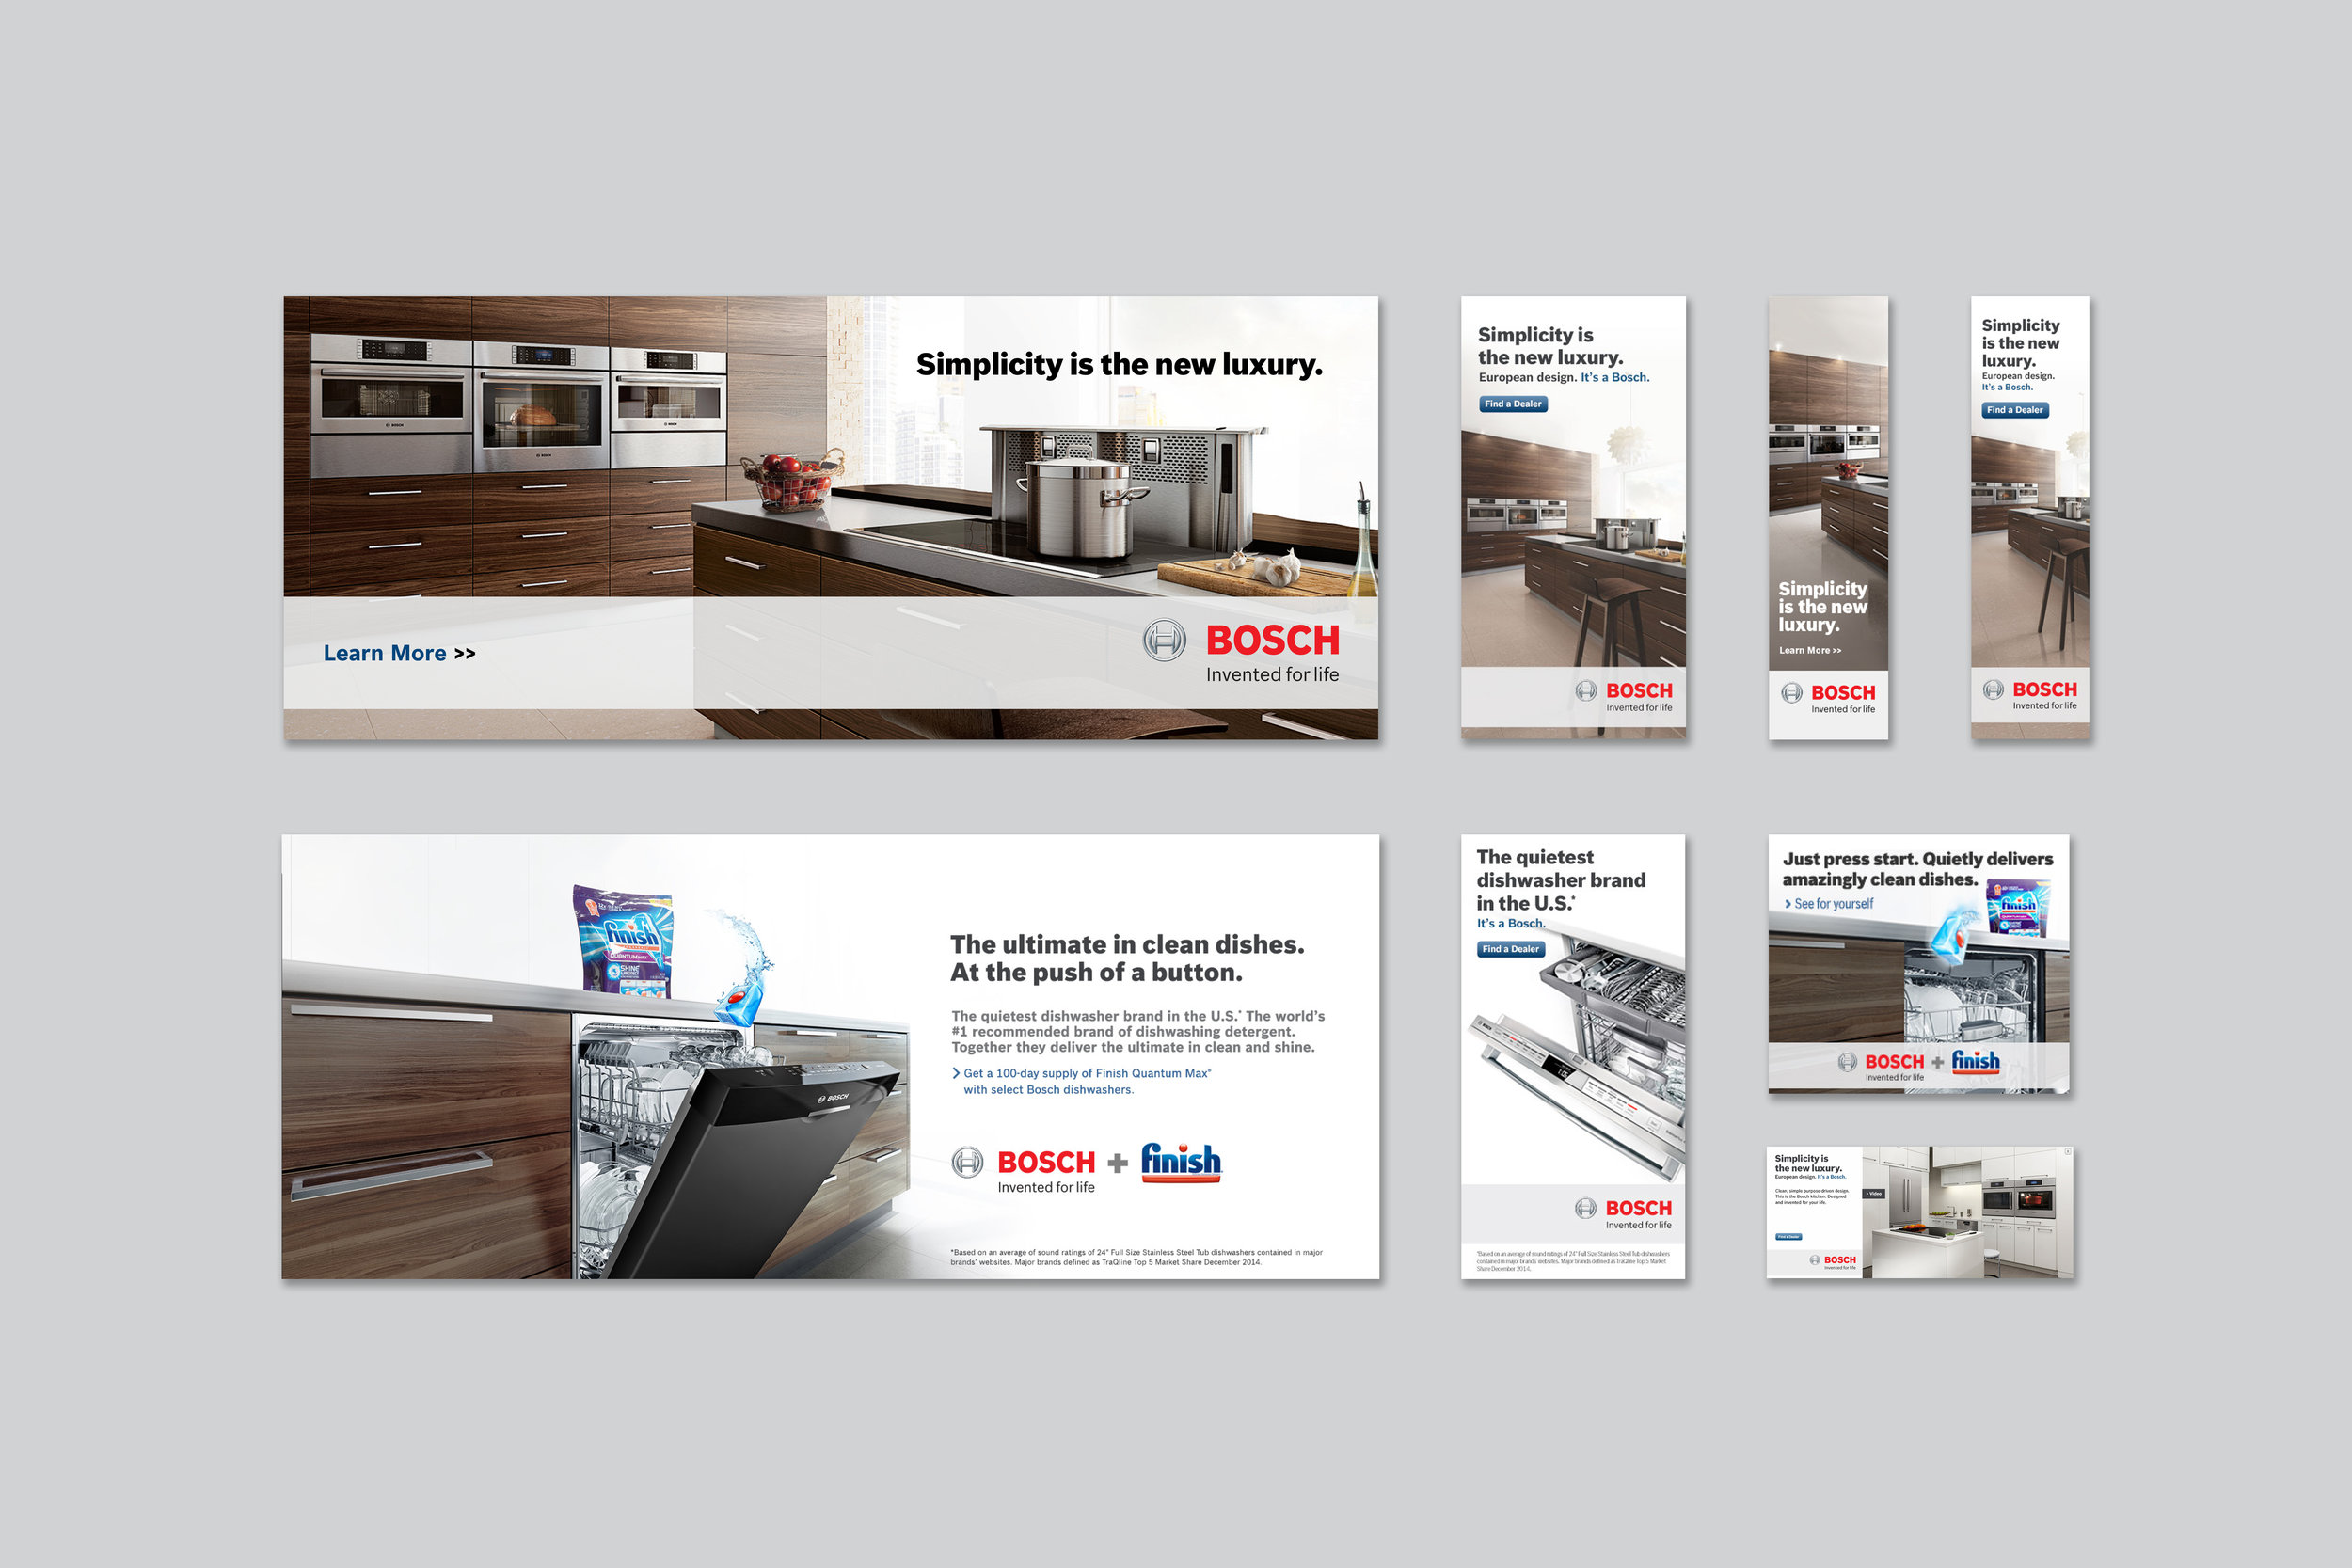 BOSCH | luxury home kitchen appliances | digital banner ads for global campaign